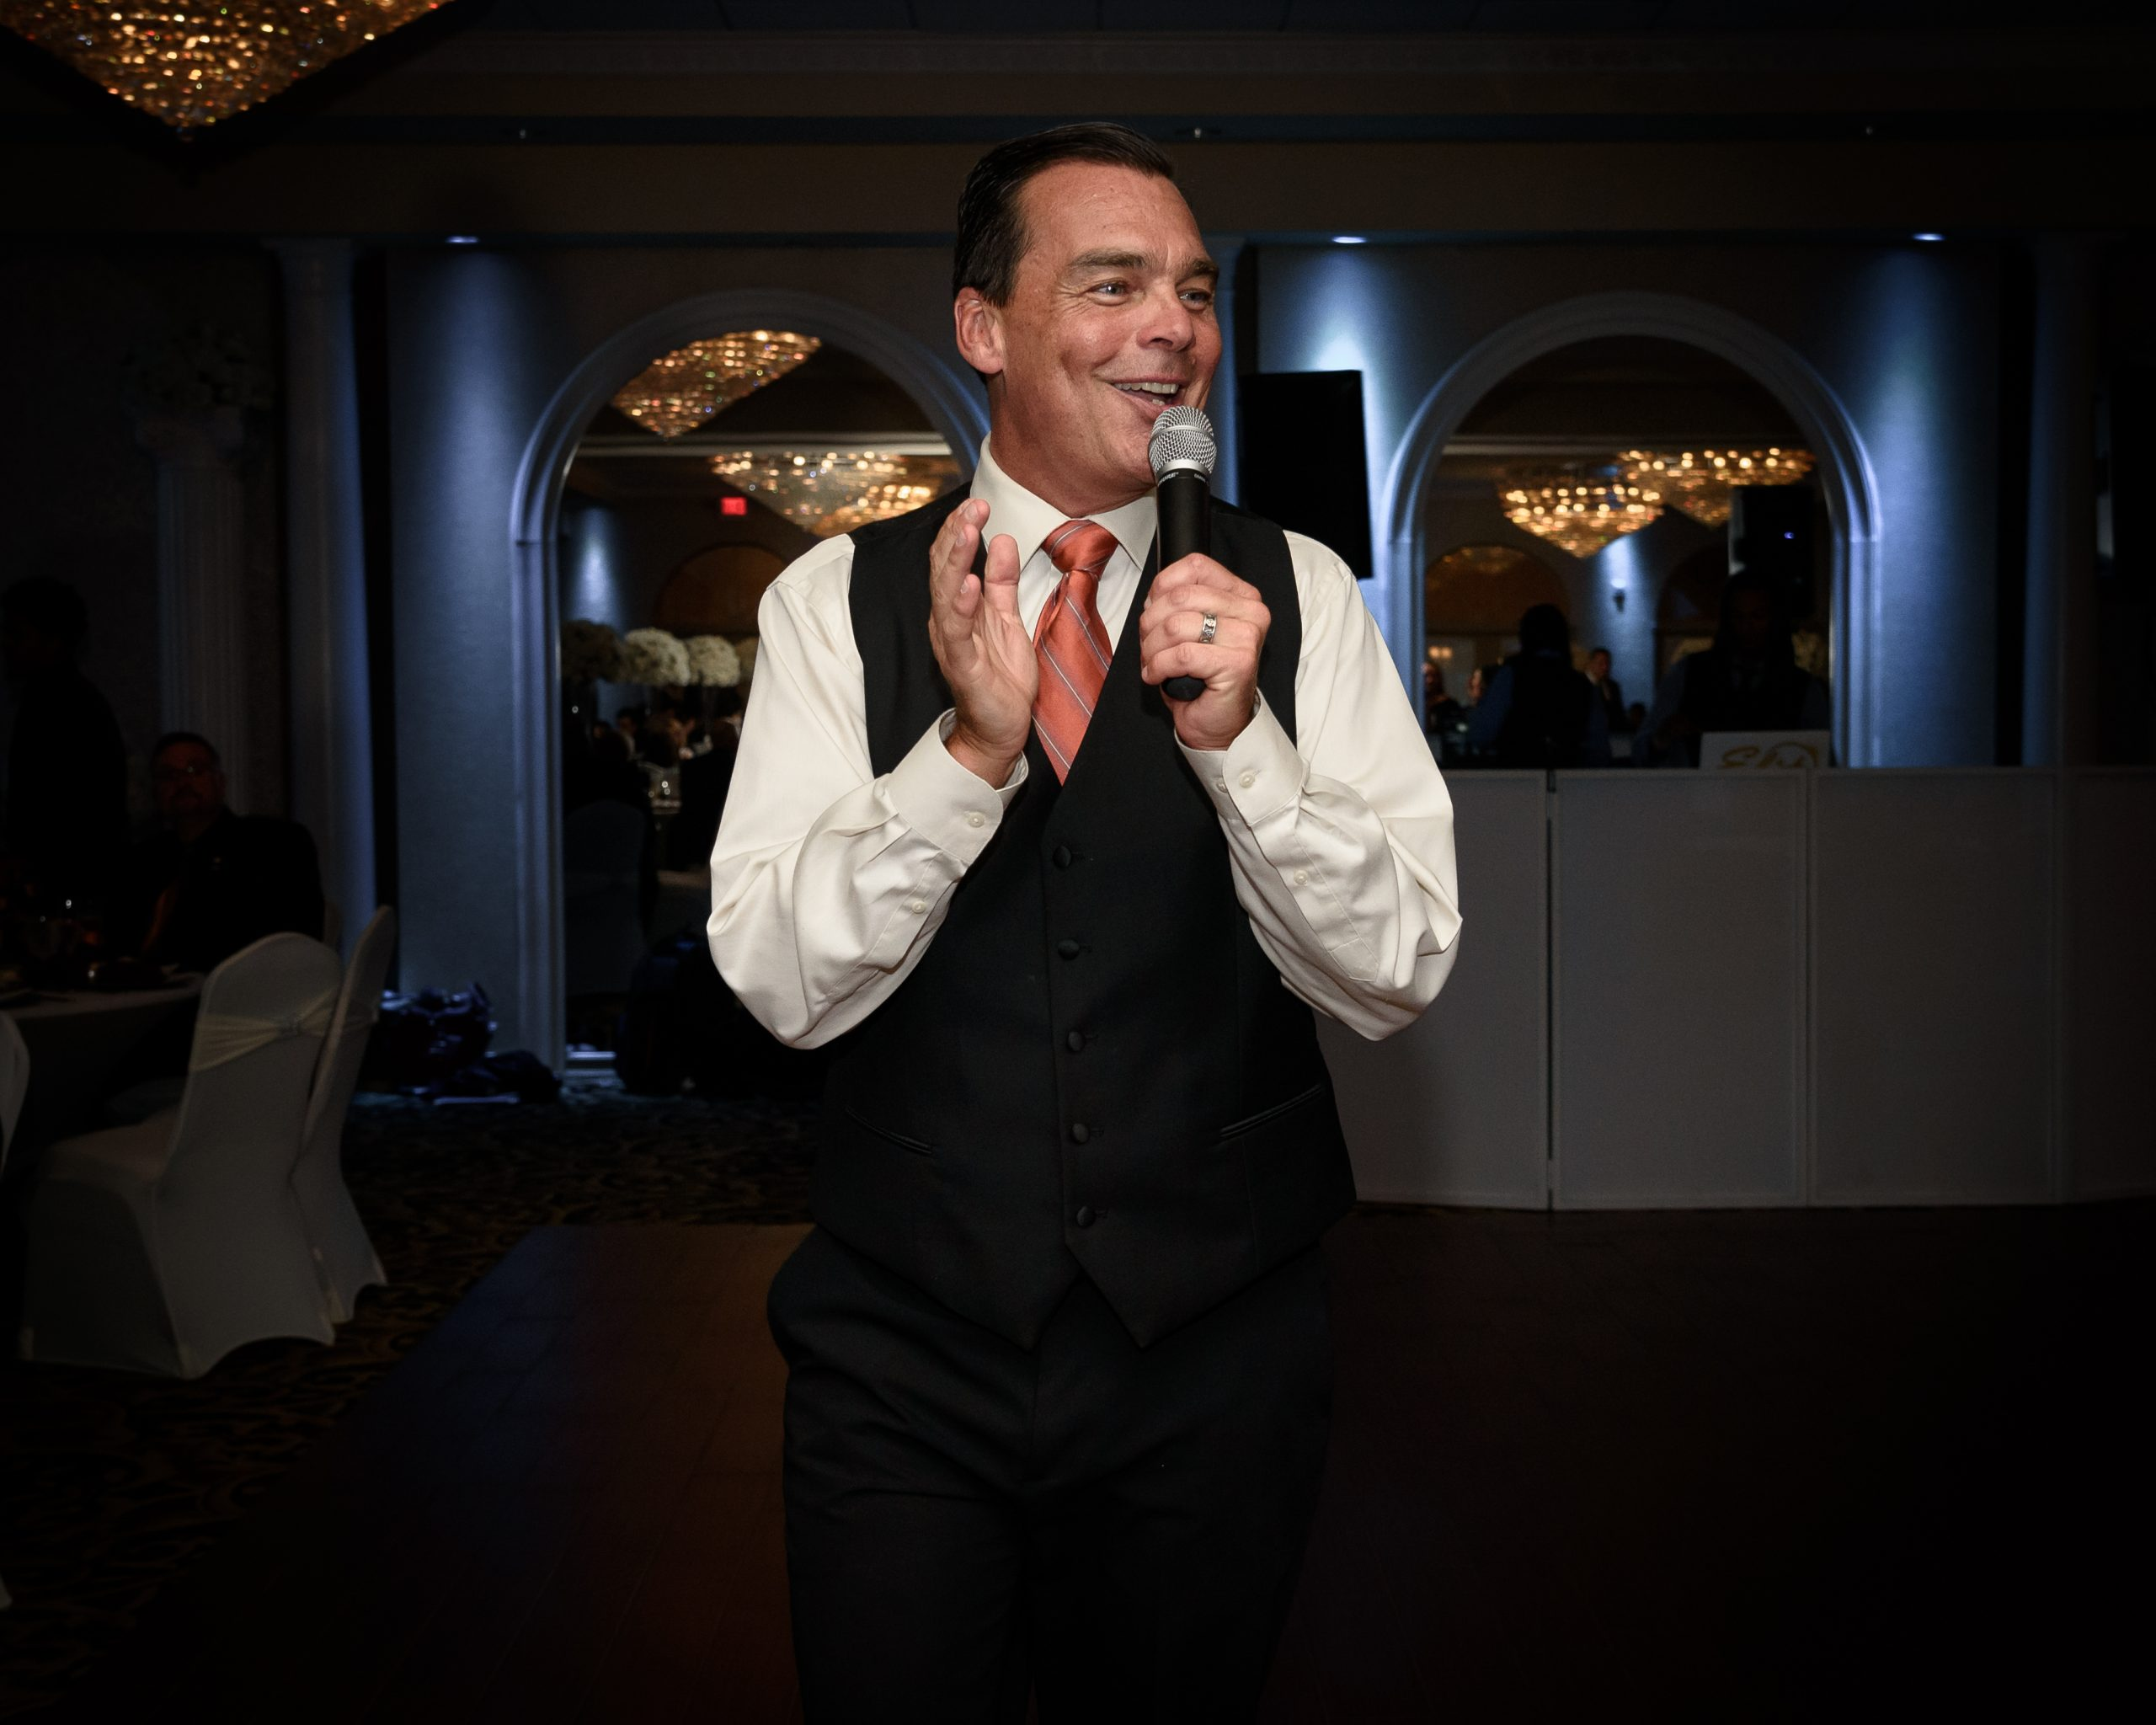 EliteEntertainment_NJWedding_EliteImages_RamadaTomsRiver_VersaillesBallroom